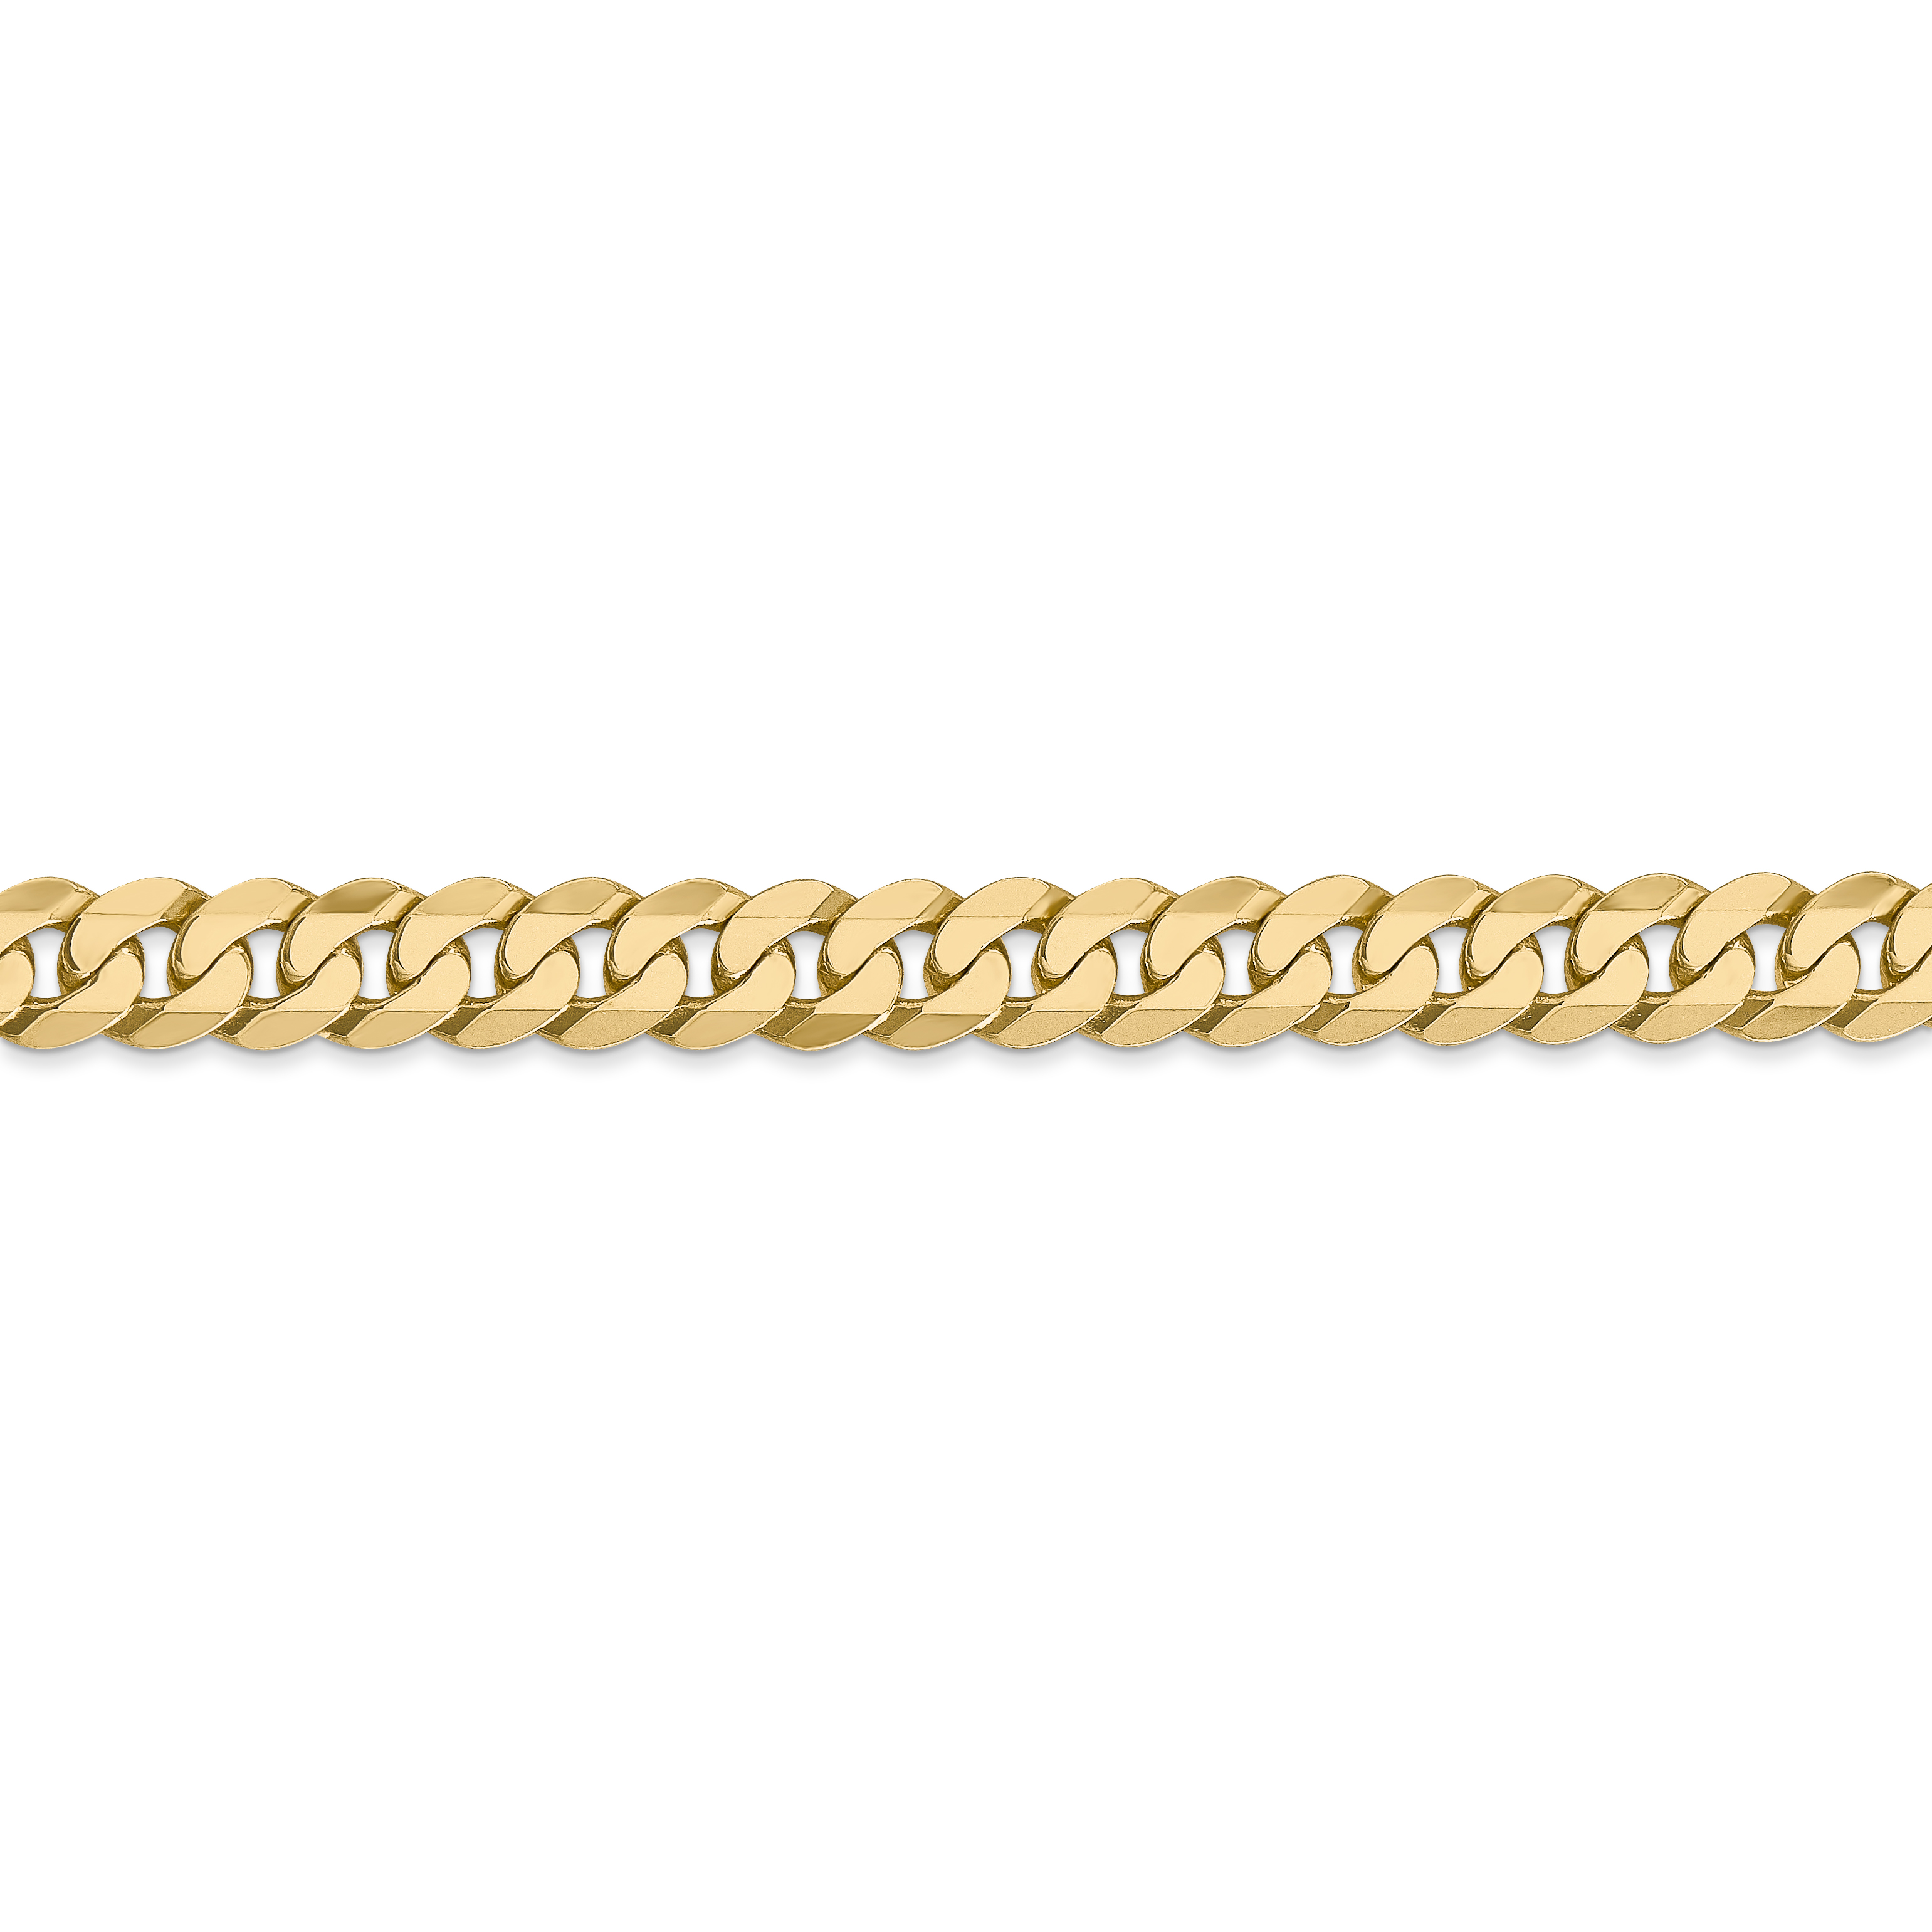 14k Yellow Gold 6.25mm Beveled Link Curb Chain Anklet Ankle Beach Bracelet 7 Inch : Fine Jewelry Gifts For Women For Her - image 2 de 4